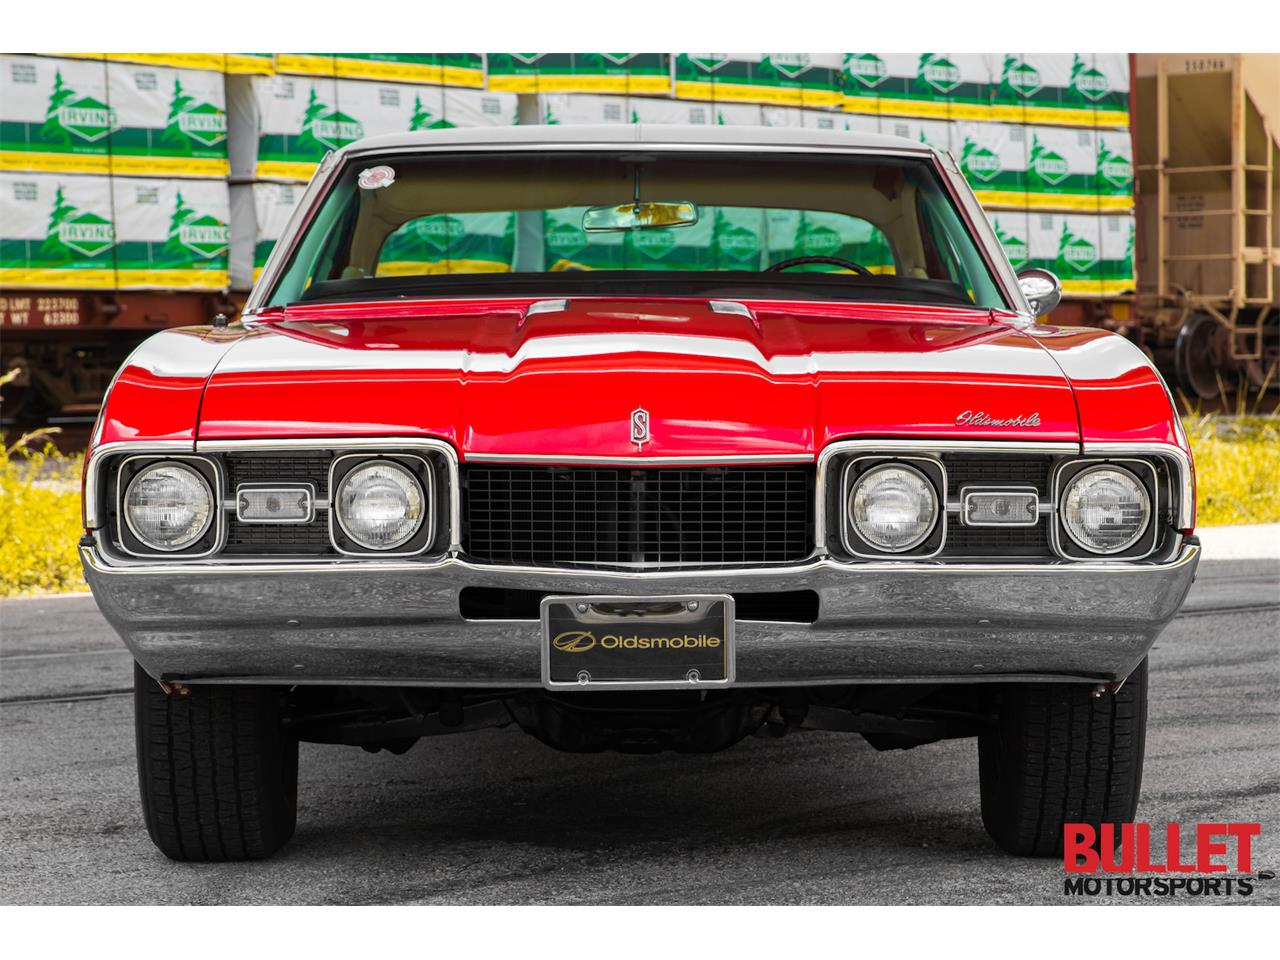 Large Picture of Classic 1968 Cutlass Supreme located in Florida - $30,000.00 - PZS9